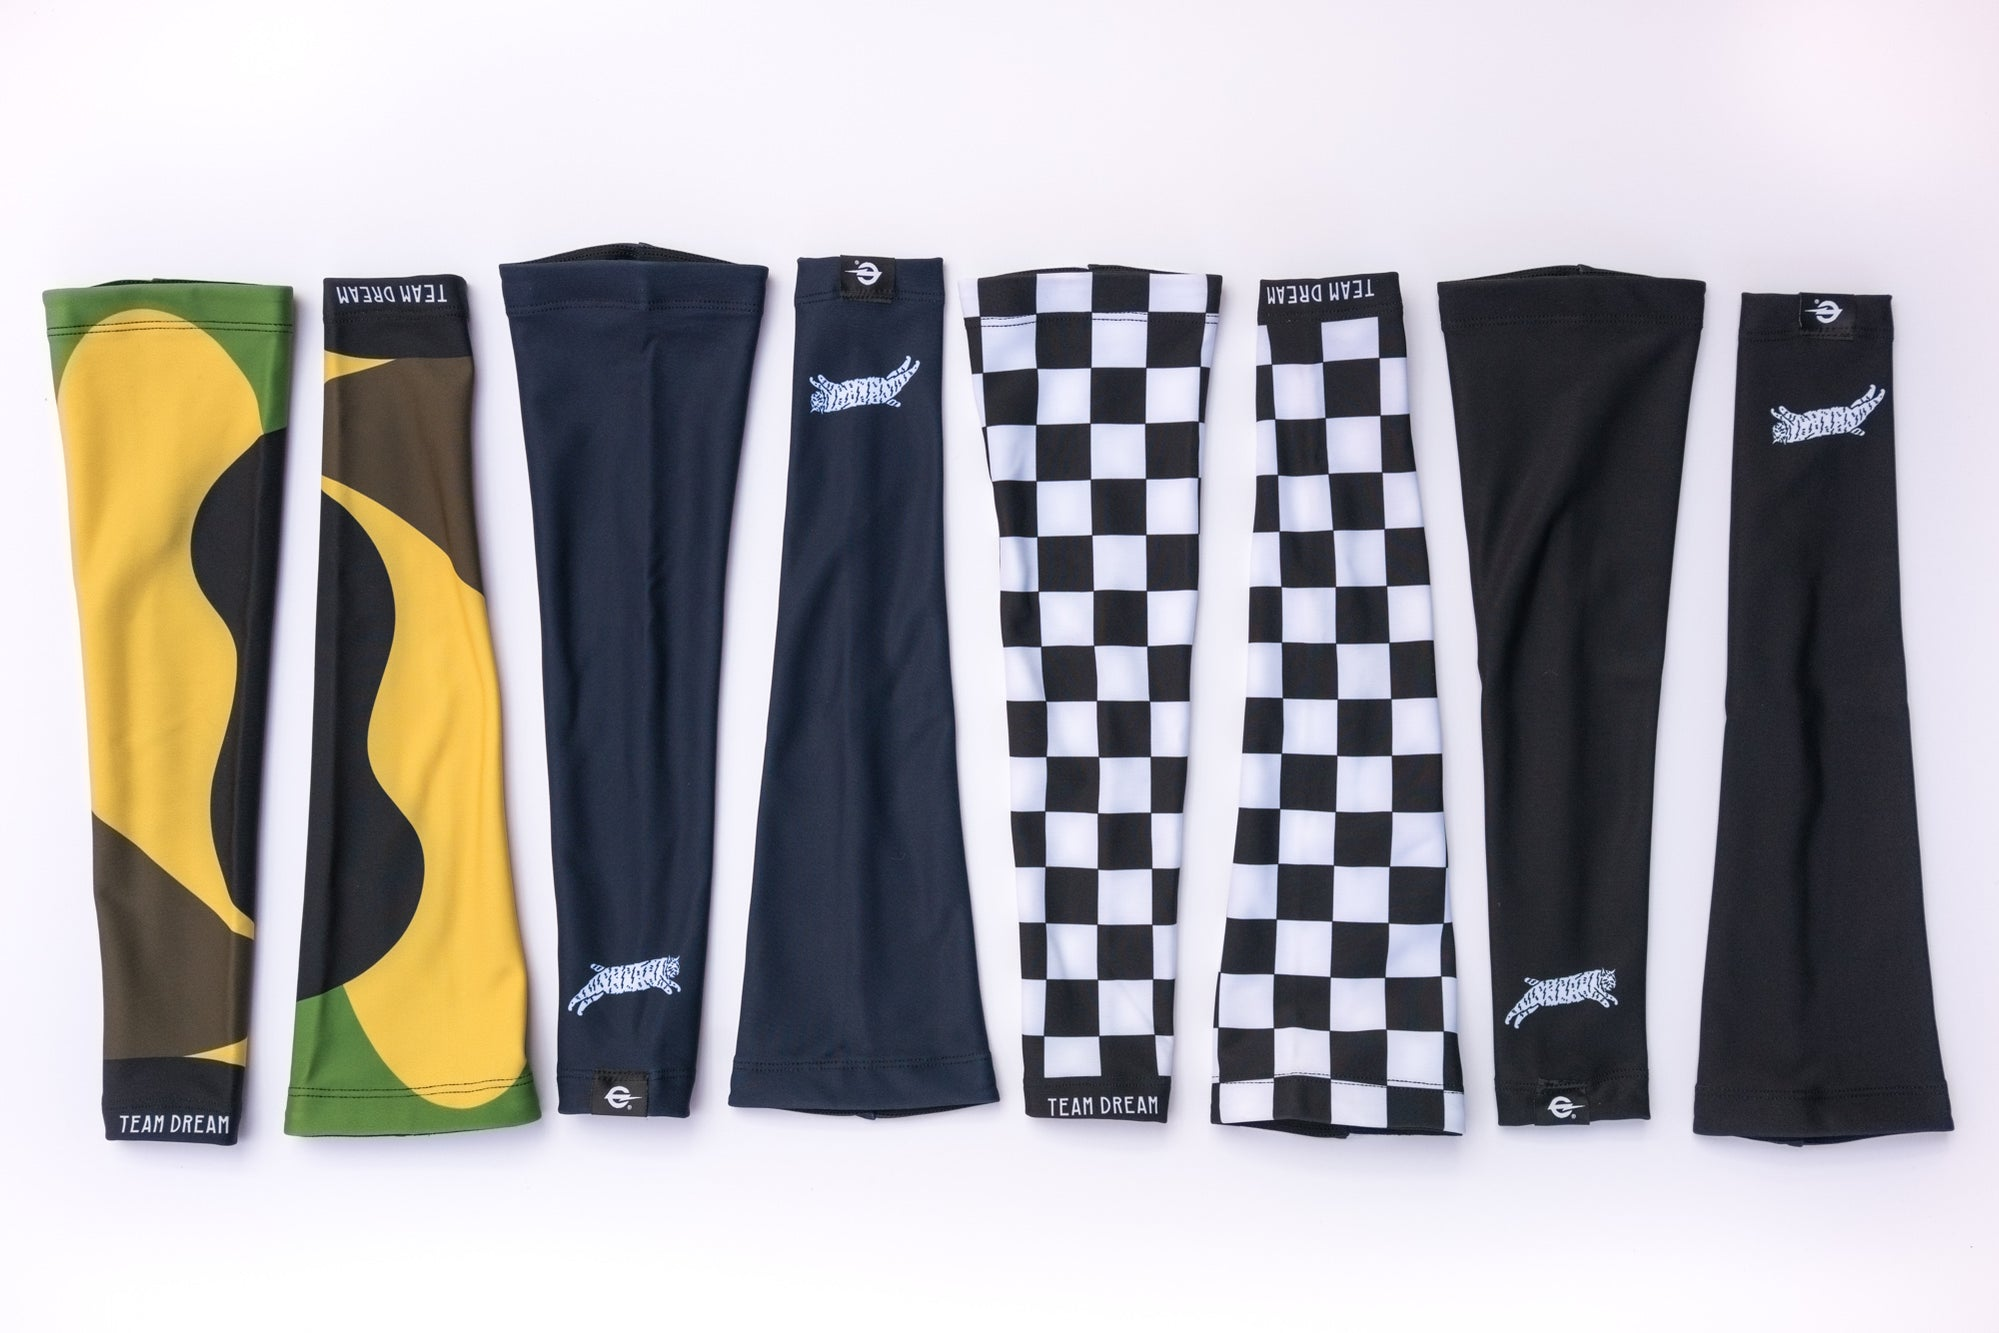 Team Arm Warmer Sets